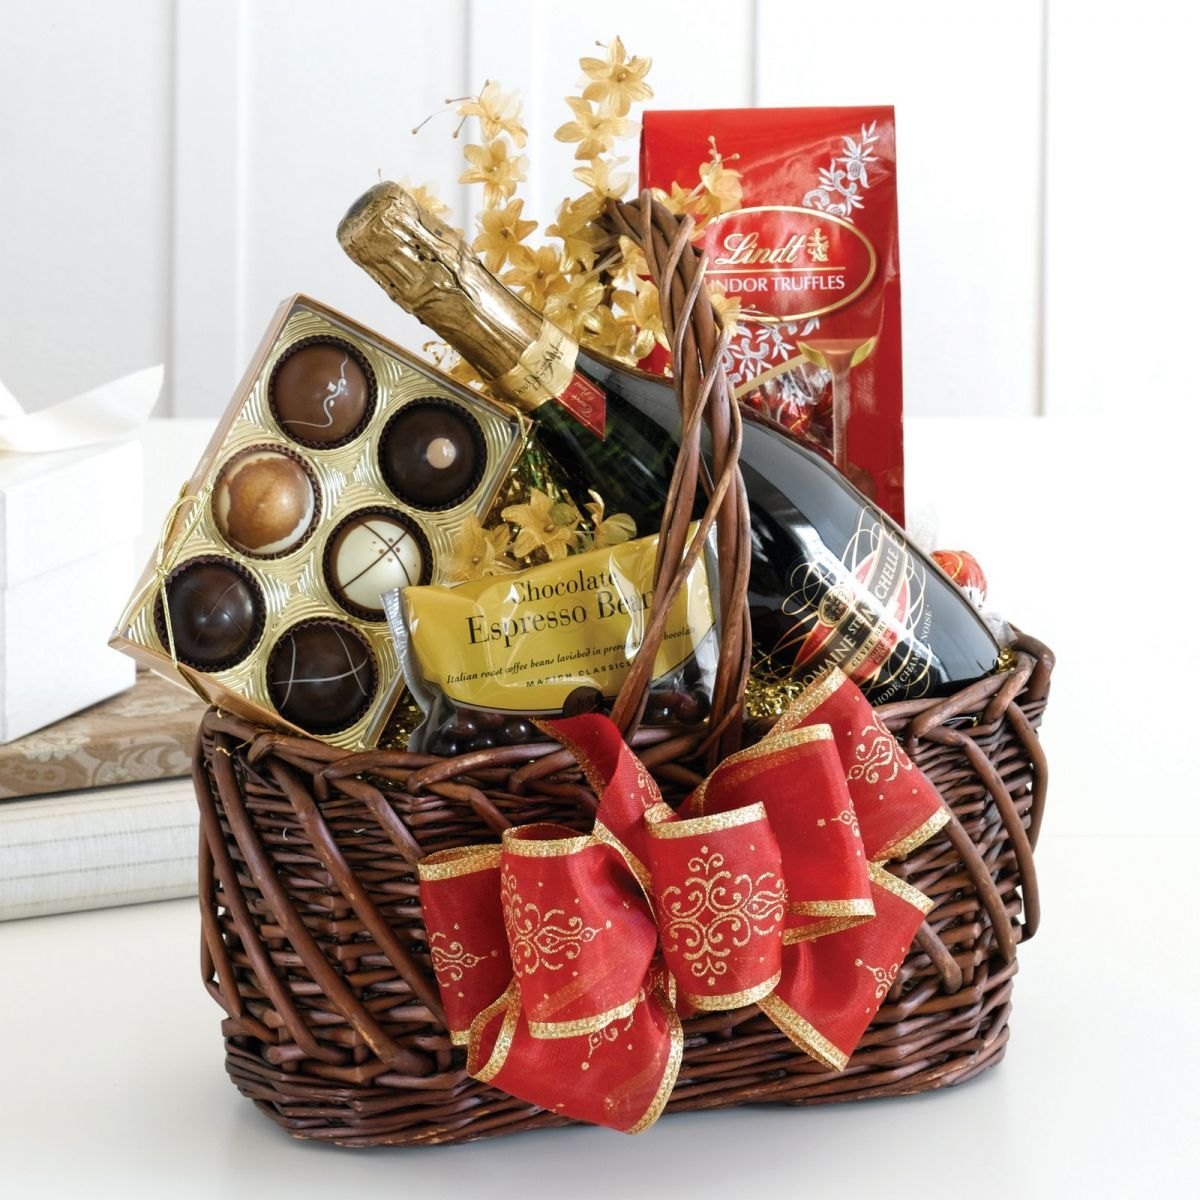 Gift Basket Wrapping Ideas Gift Baskets With Gourmet Goodies Is A Good And A Thoughtful